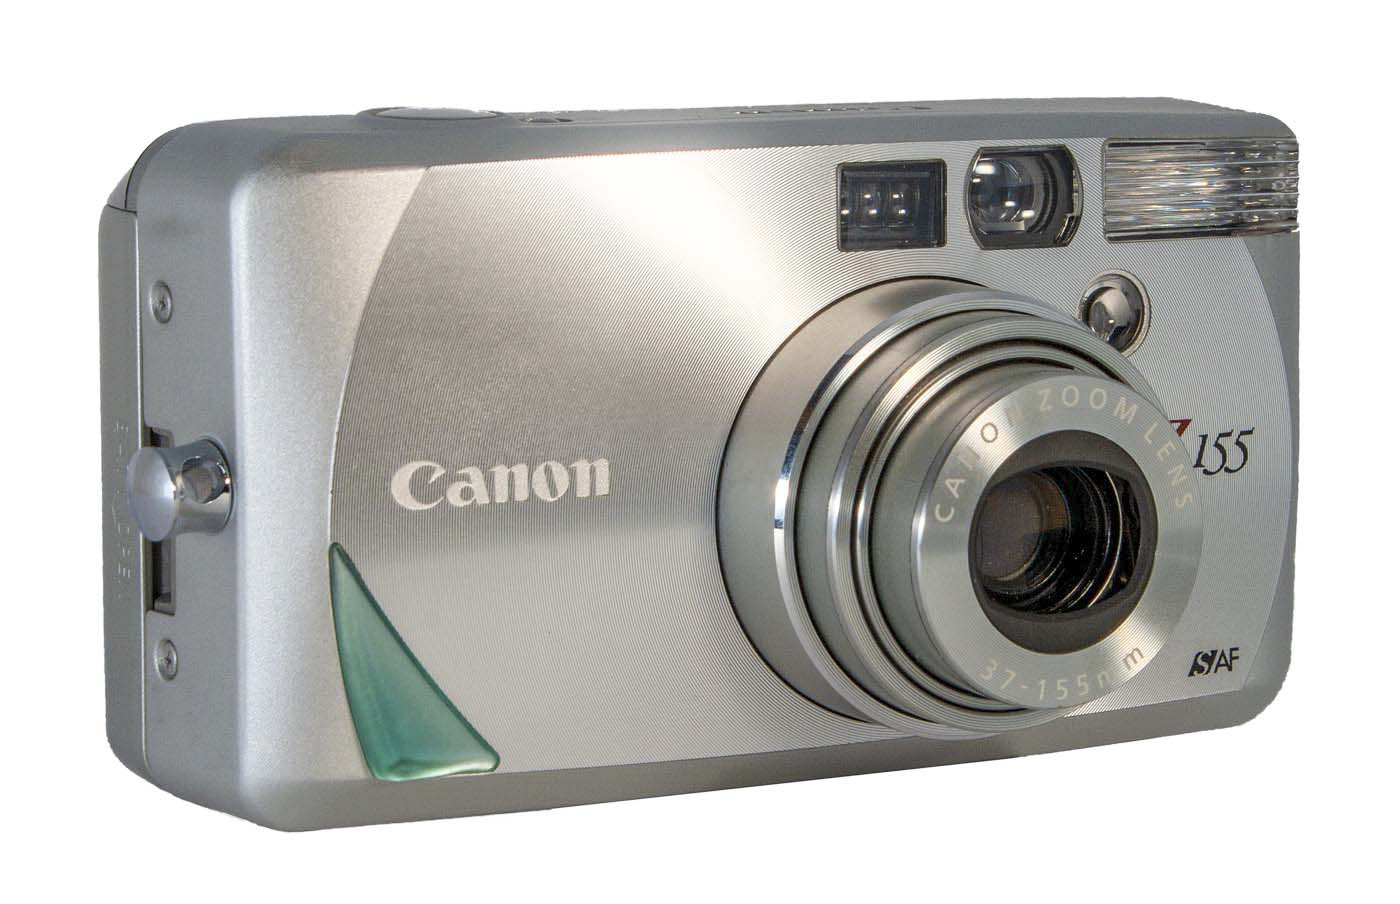 Canon Sure Shot Z155